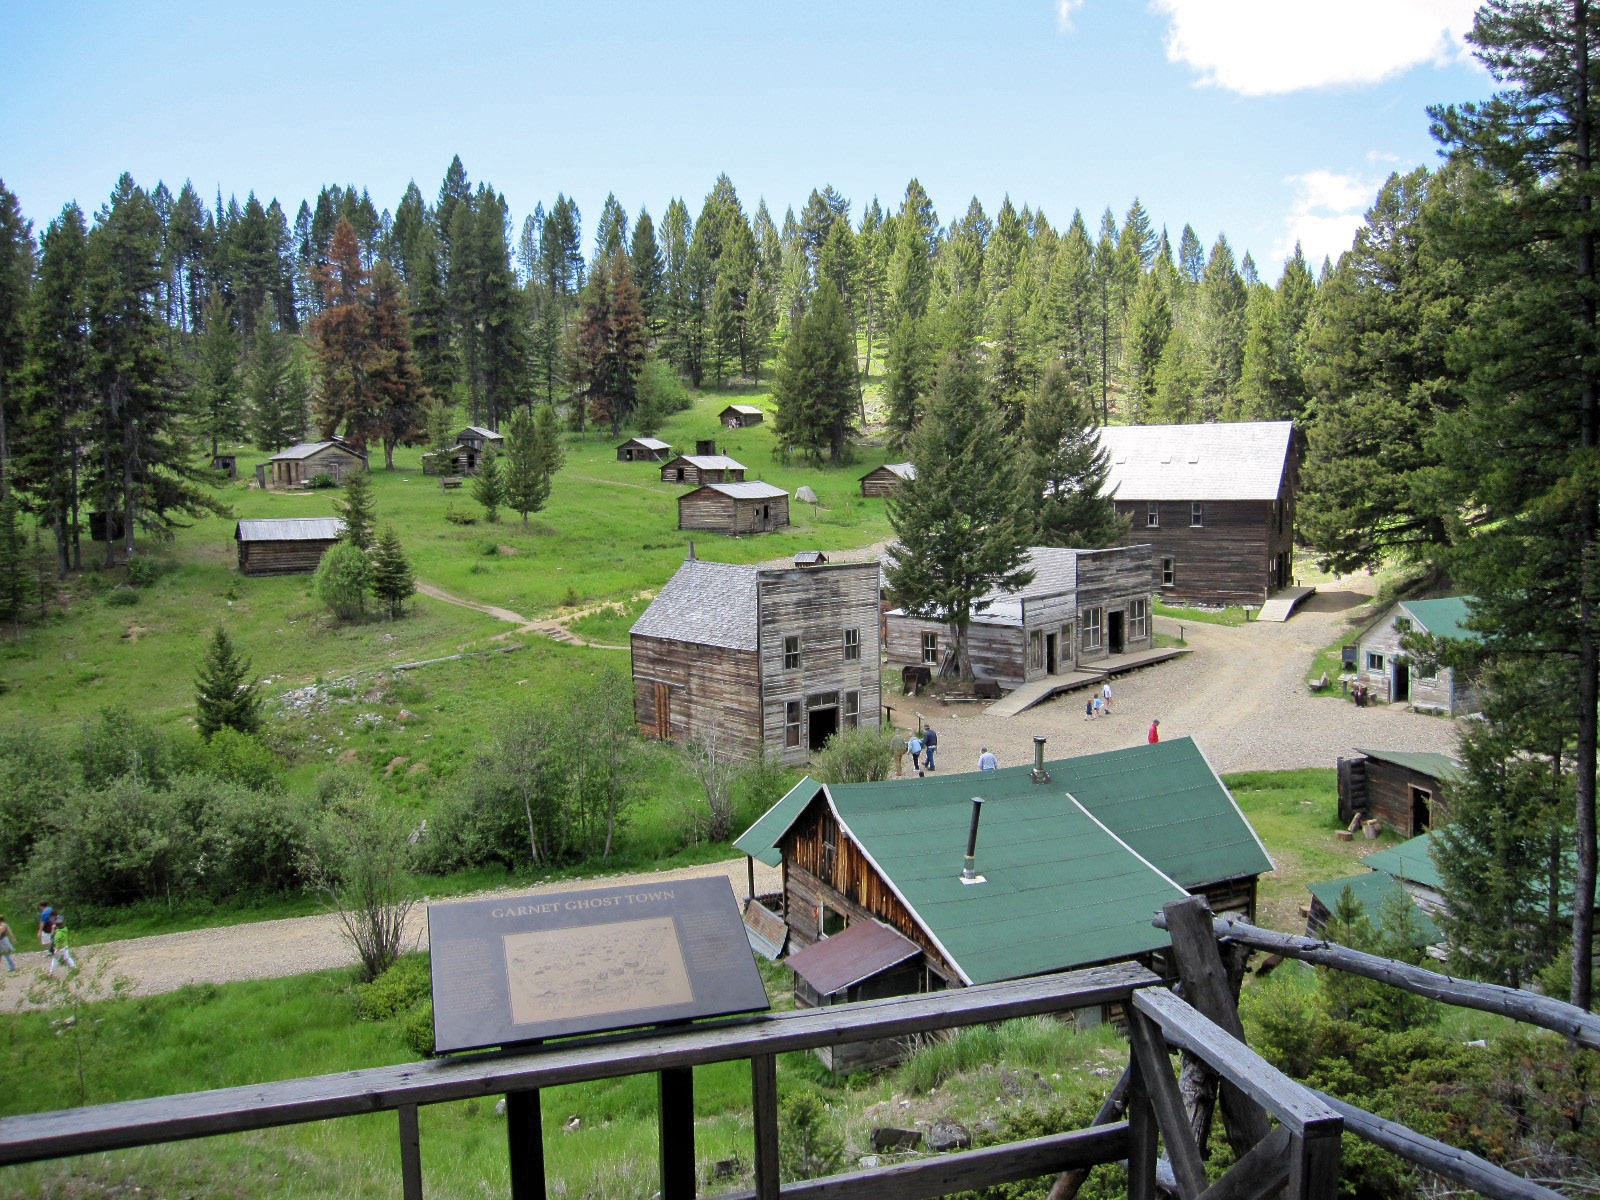 Visiting Garnet Ghost Town | Destination Missoula